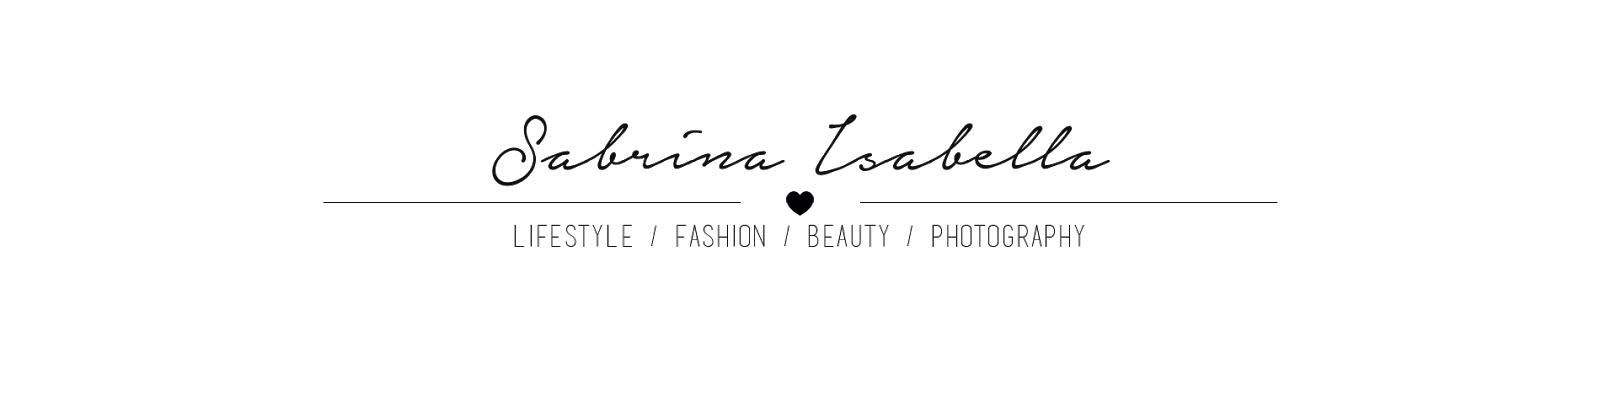 Sabrina Isabella // Lifestyle,Fashion,Beauty,Photography